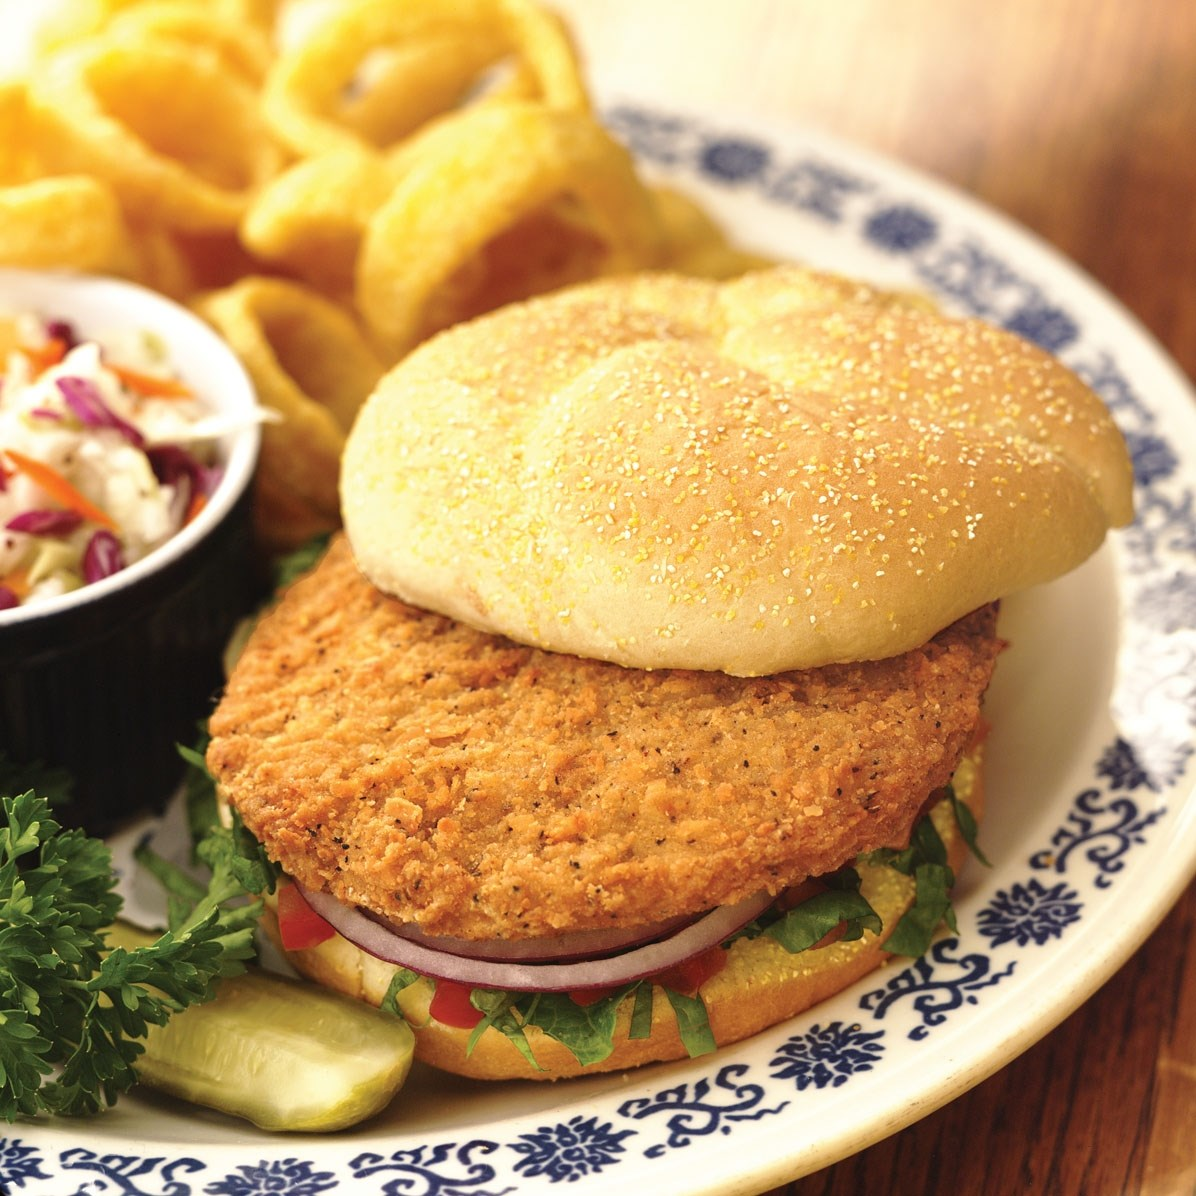 Kings Delight® No Antibiotics Ever, Fully Cooked, Hot And Spicy Whole Grain Breaded Chicken Breast…<br/>(66214)